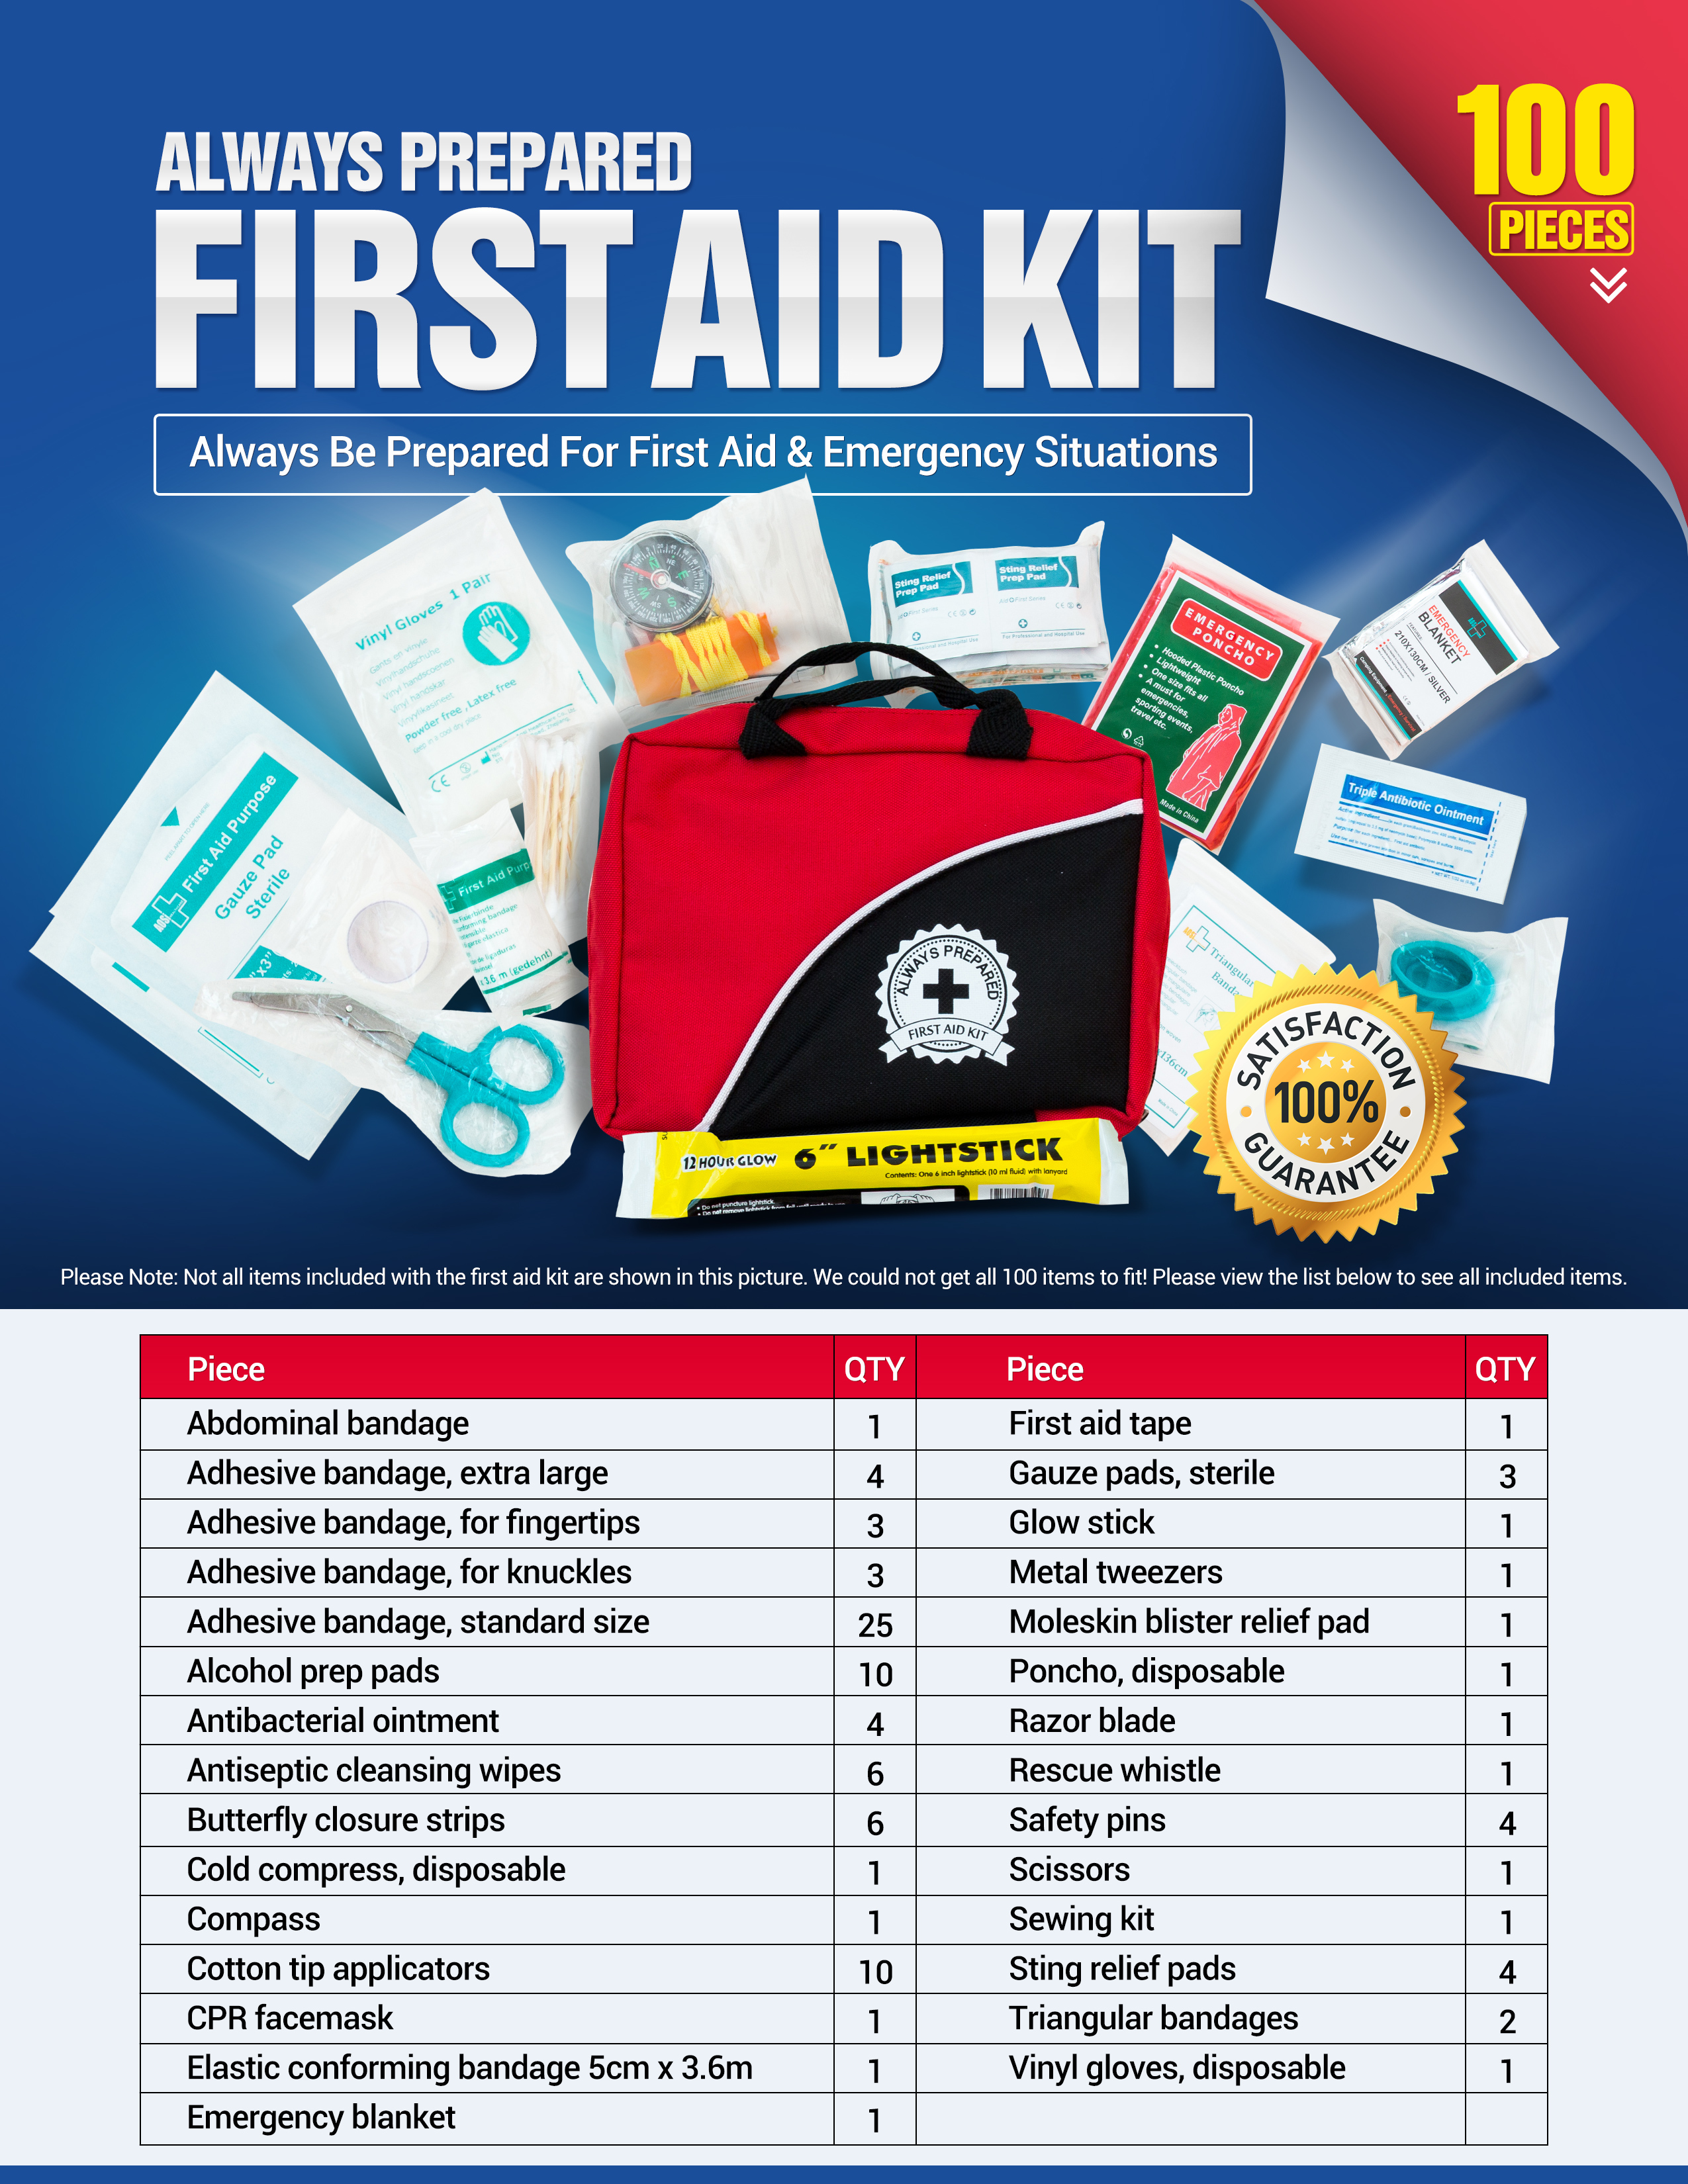 small first aid kit 100 piece car home survival image 3 of 5